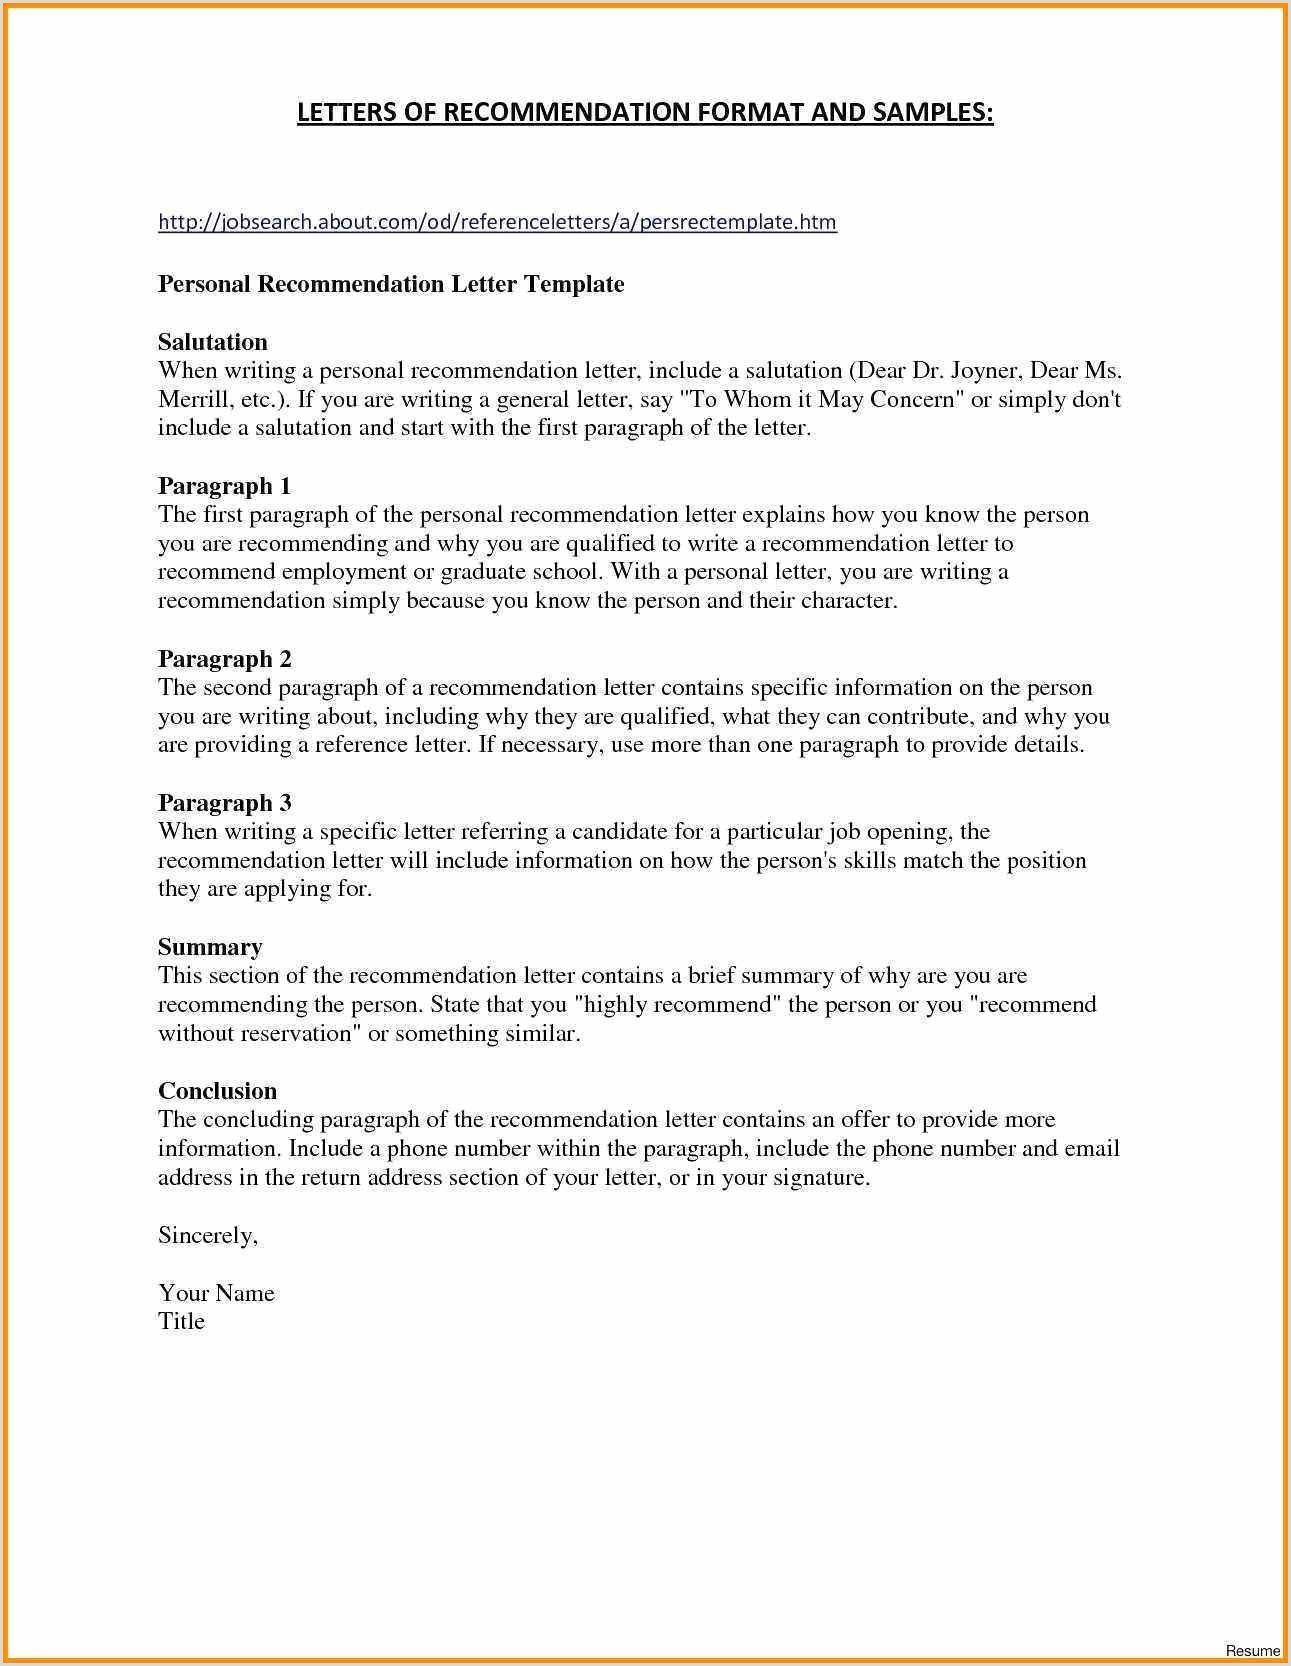 Free Downloadable Resume Templates for Microsoft Word New 52